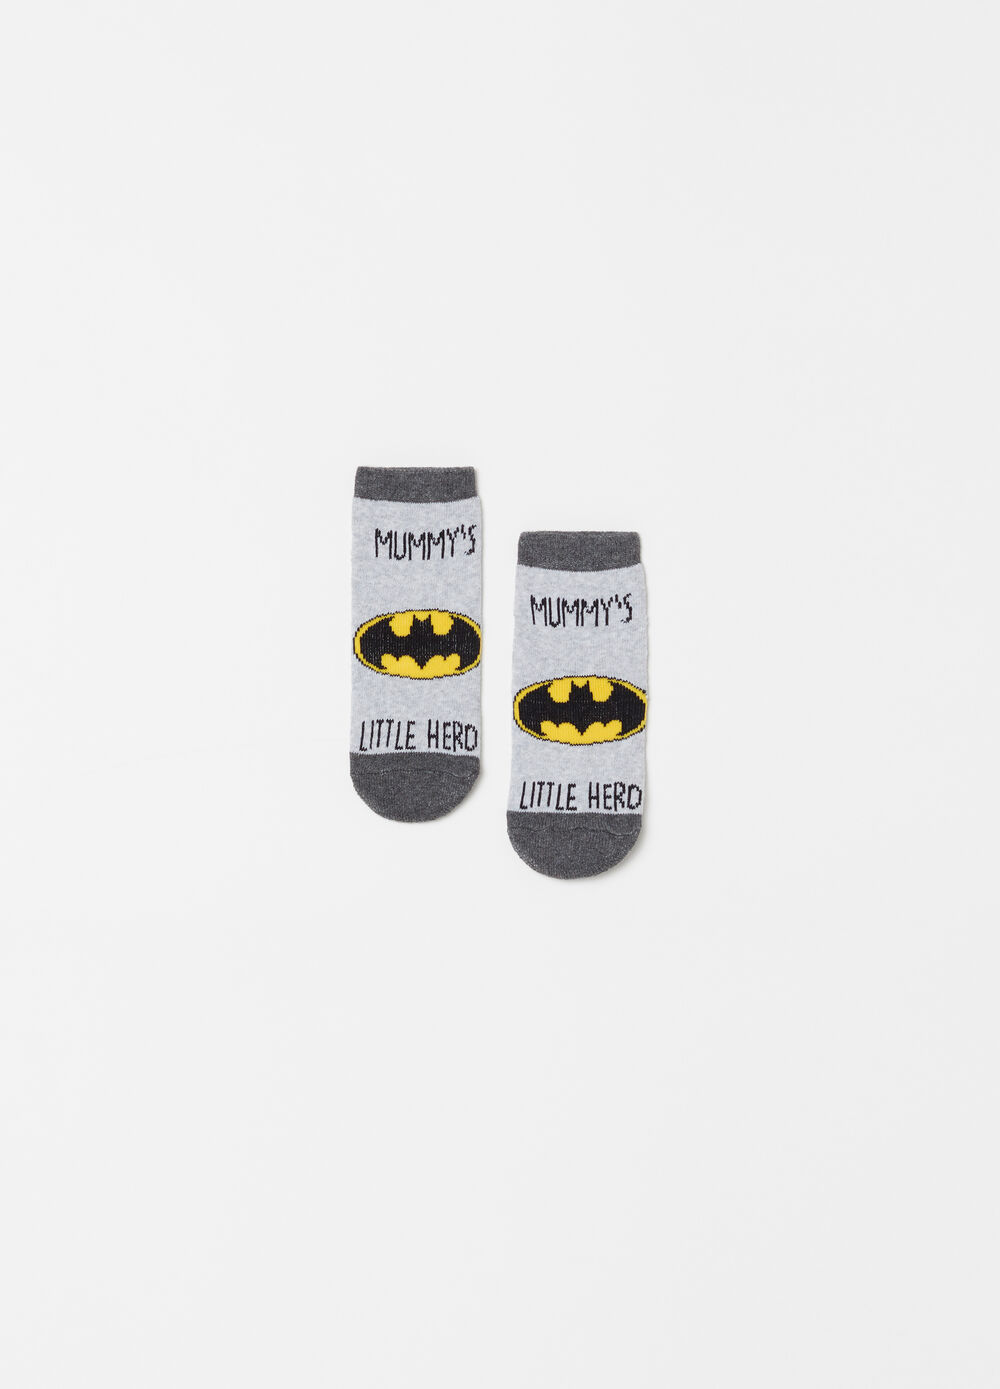 Short slipper socks with Batman embroidery